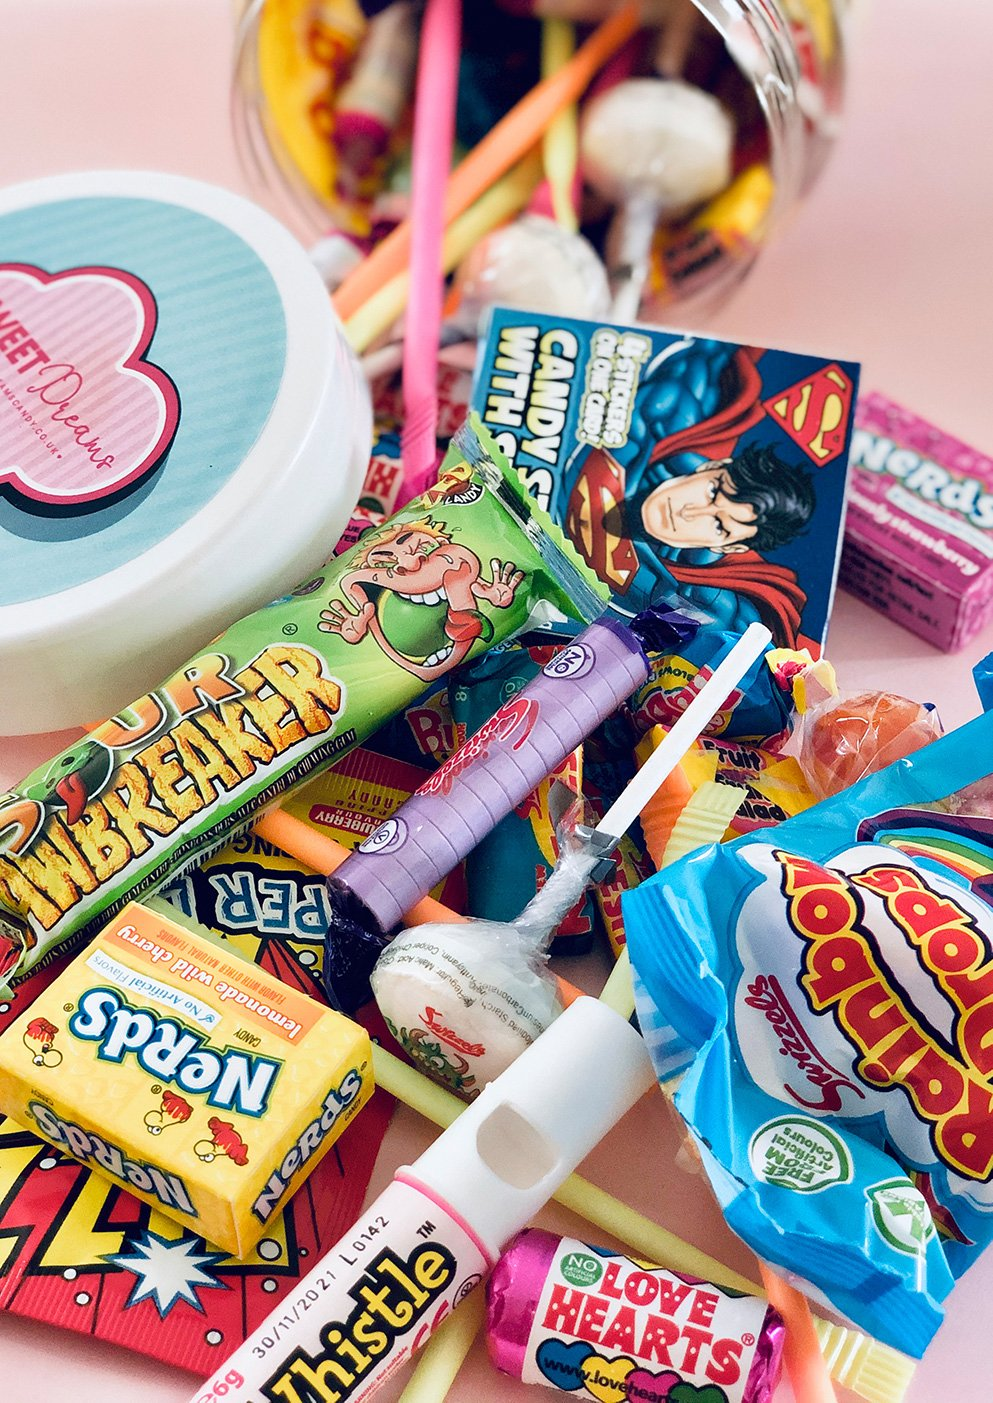 Retro Sweets - Sweet Dreams Candy Ltd